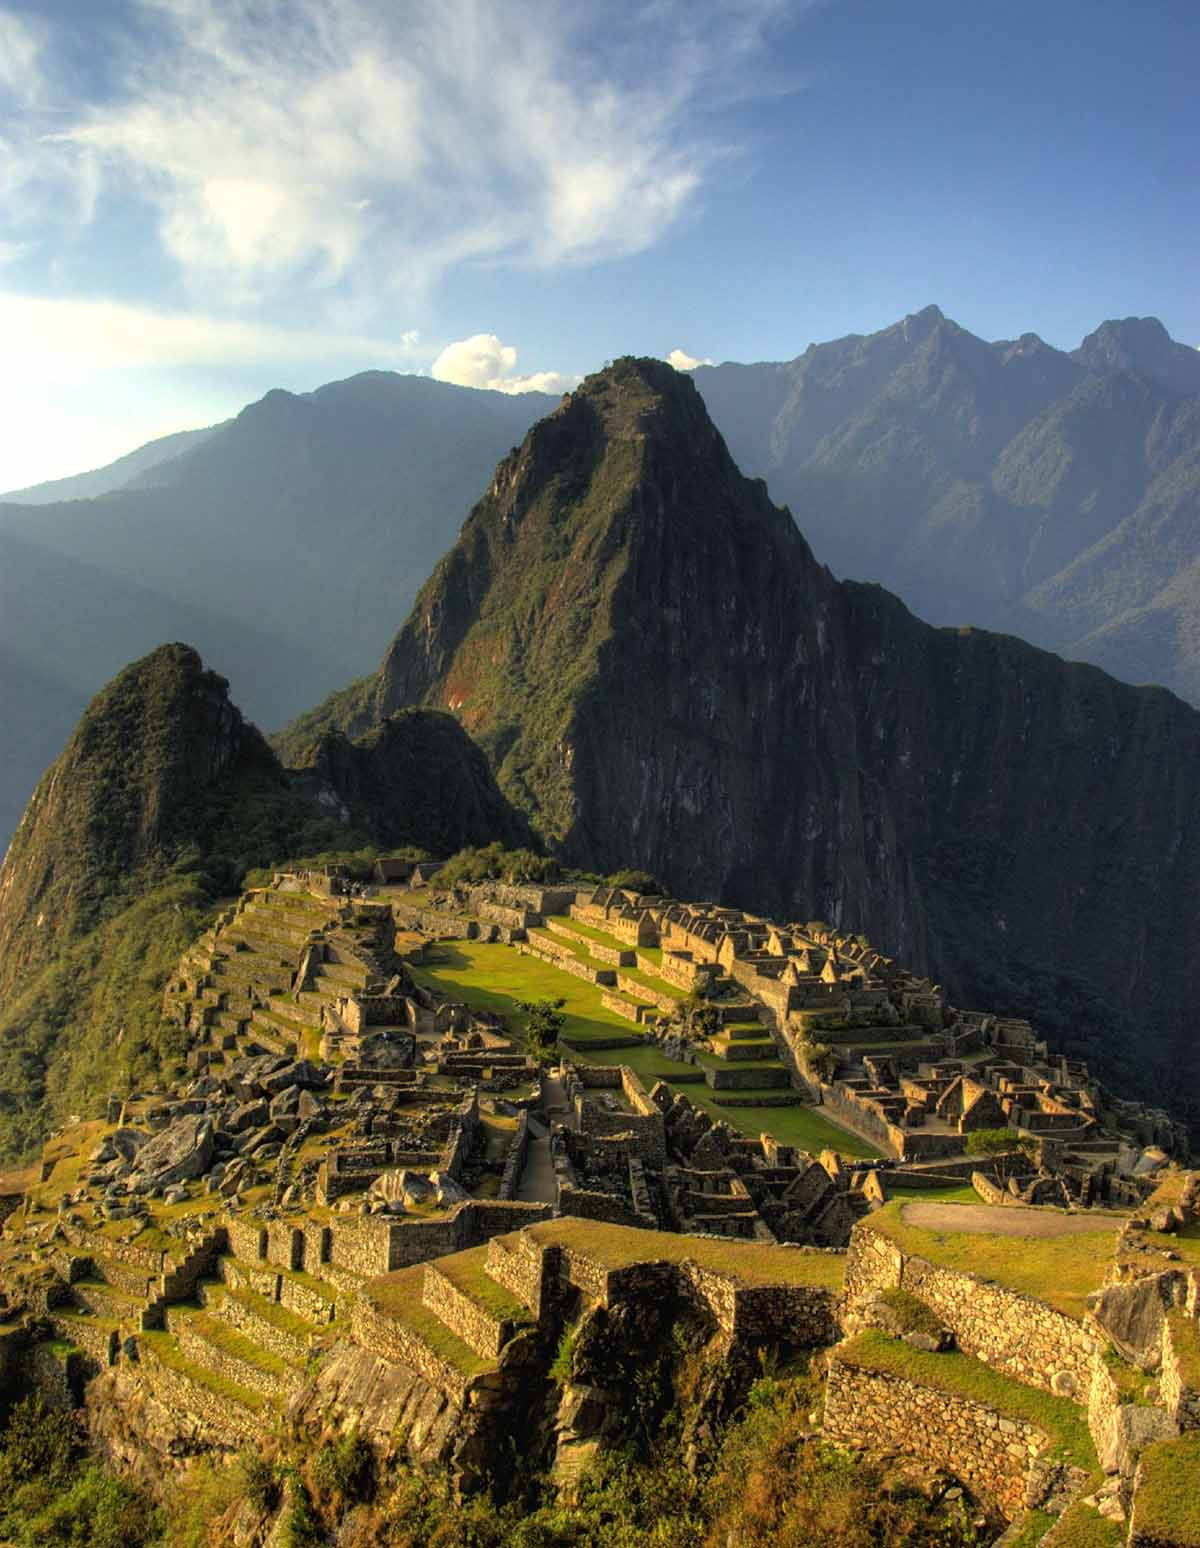 Machu Picchu lit up by the golden light of sunset. The ruins appear warm and glowing and the mountain is partly in the shadow.